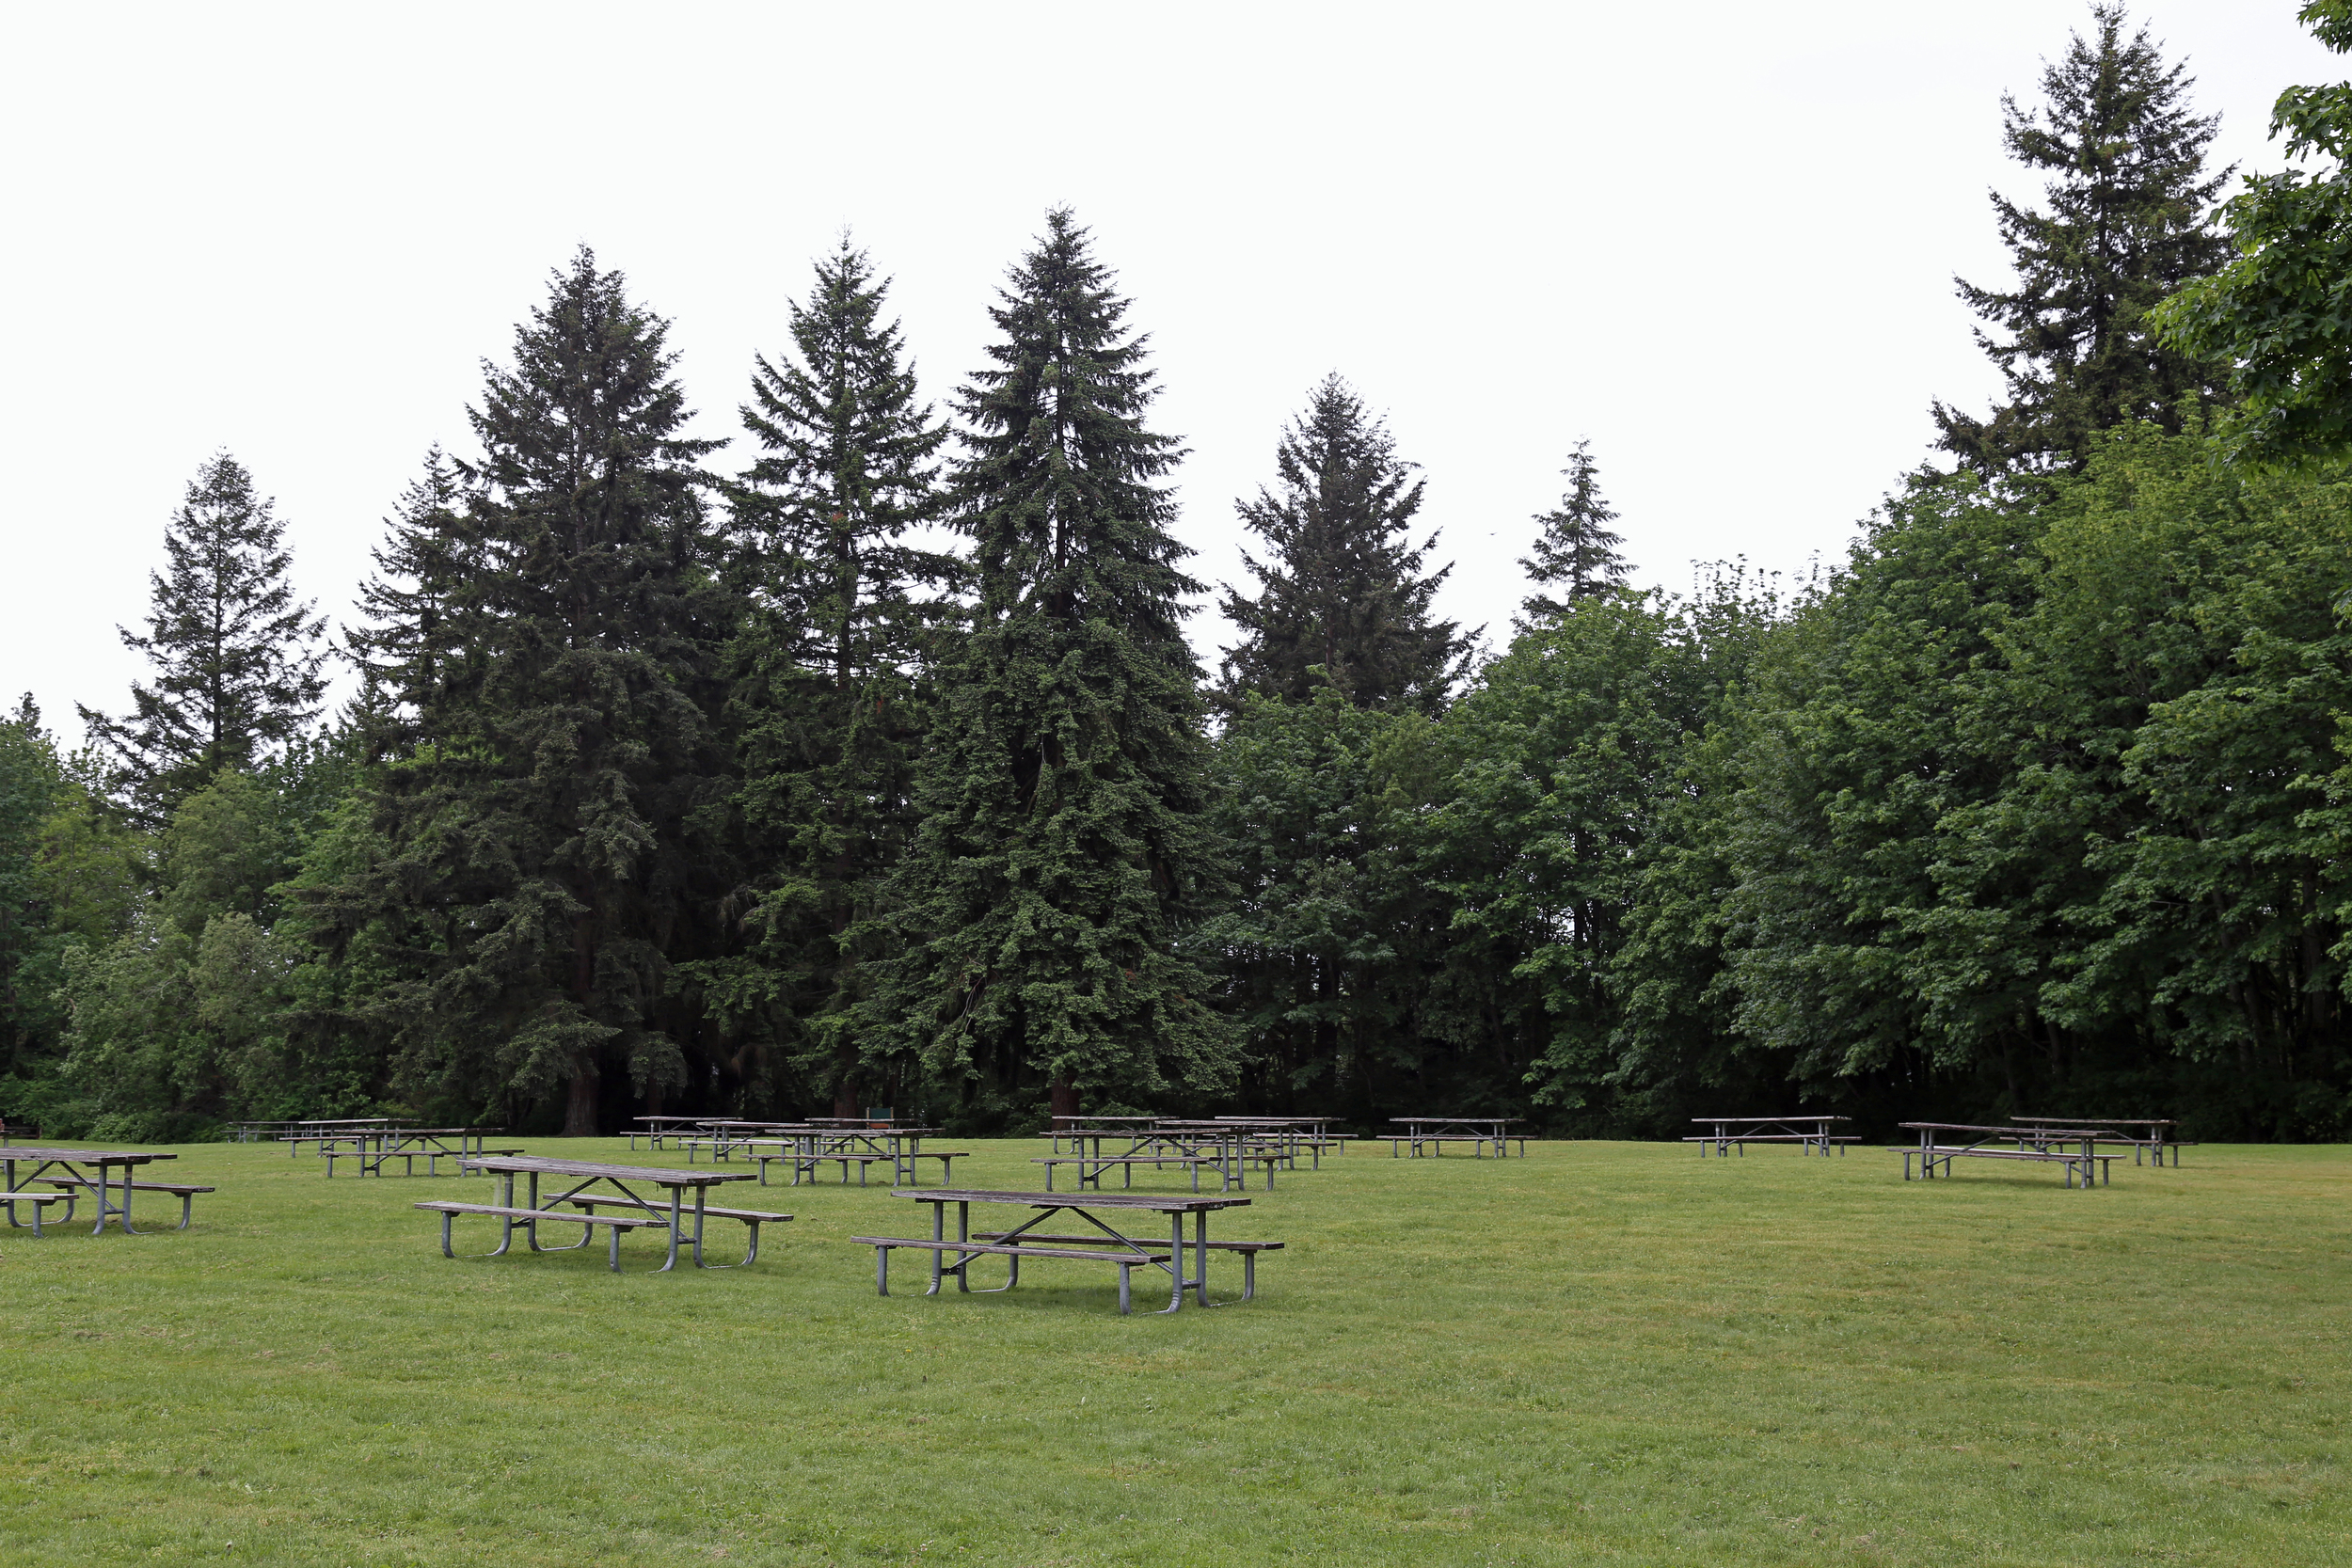 Picnic tables line the grounds.